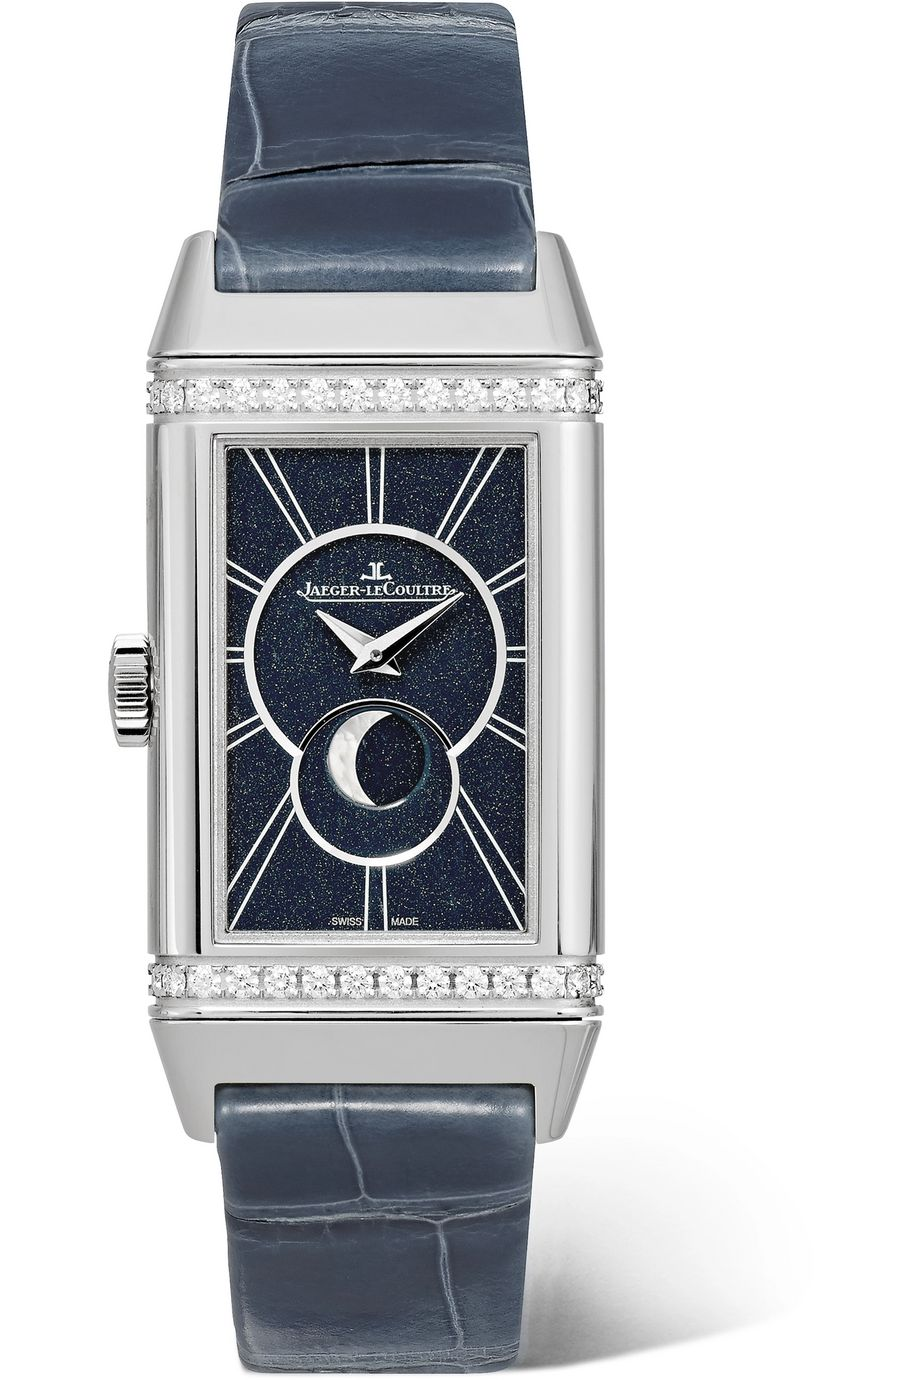 Jaeger-LeCoultre Reverso One Duetto Moon hand-wound stainless steel, diamond and alligator watch